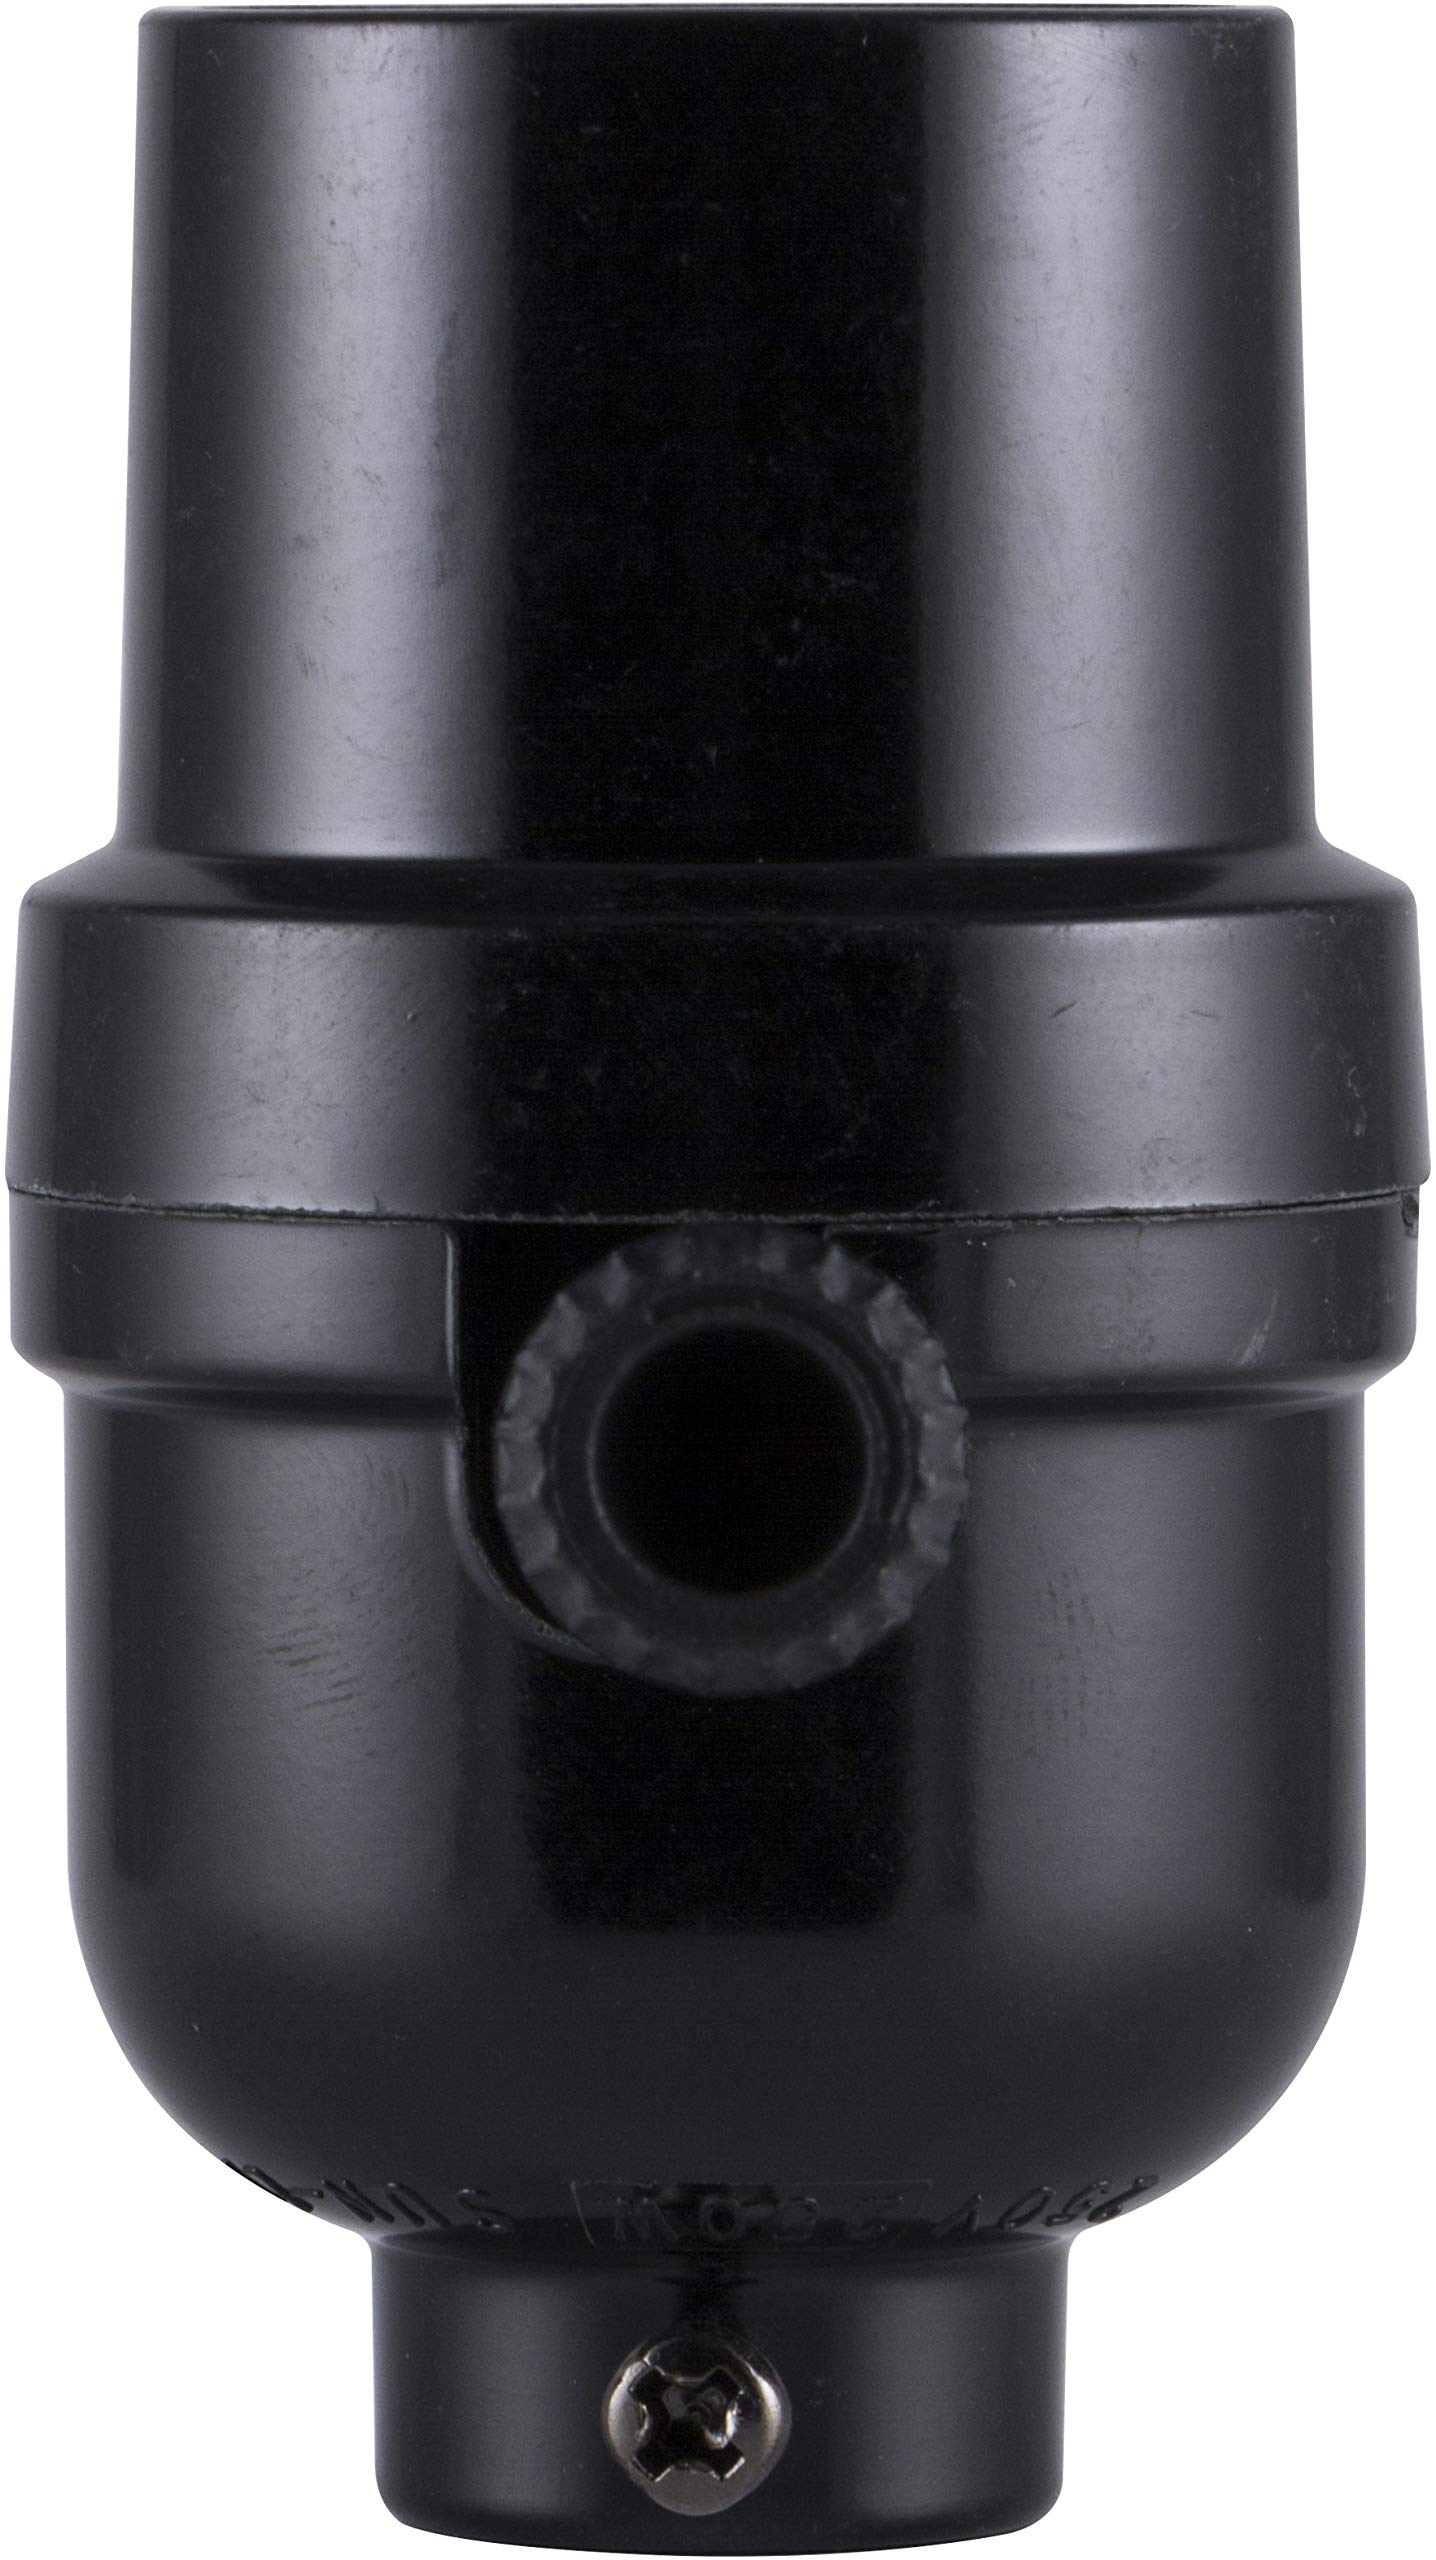 GE 3-Way Socket, Turn for Low, Medium and High Settings, for Floor and Table Lamps, DIY Project, UL Listed, Black, 18275